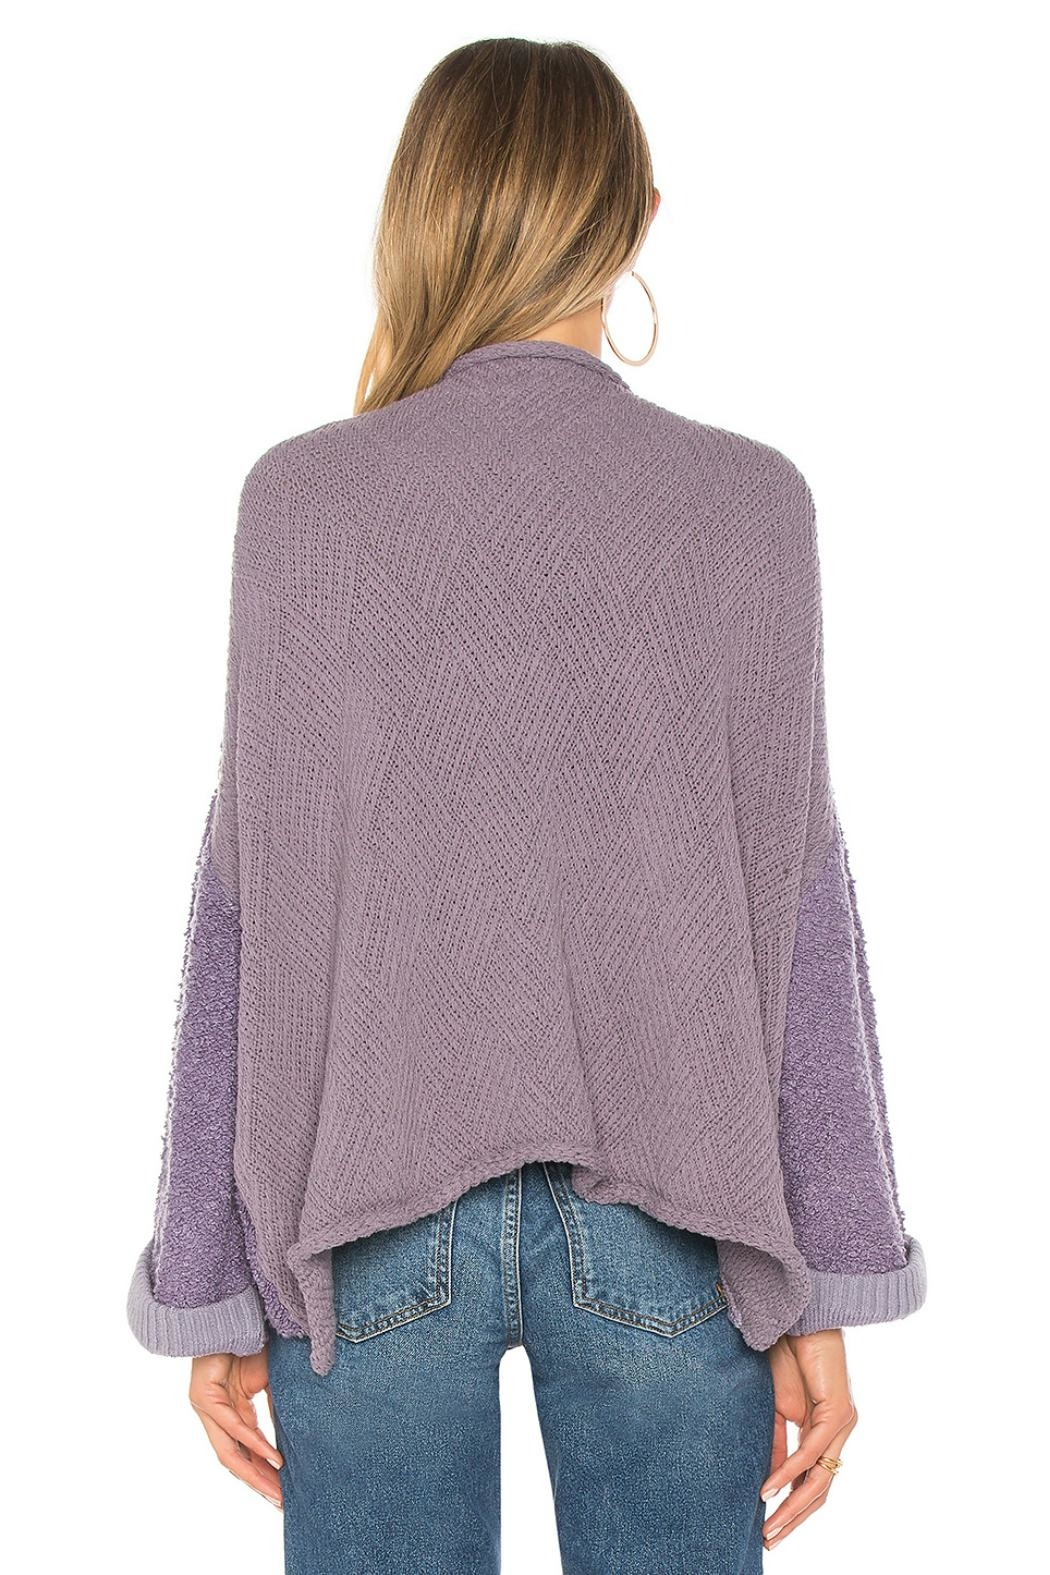 Free People Cuddle Up Pullover - Side Cropped Image